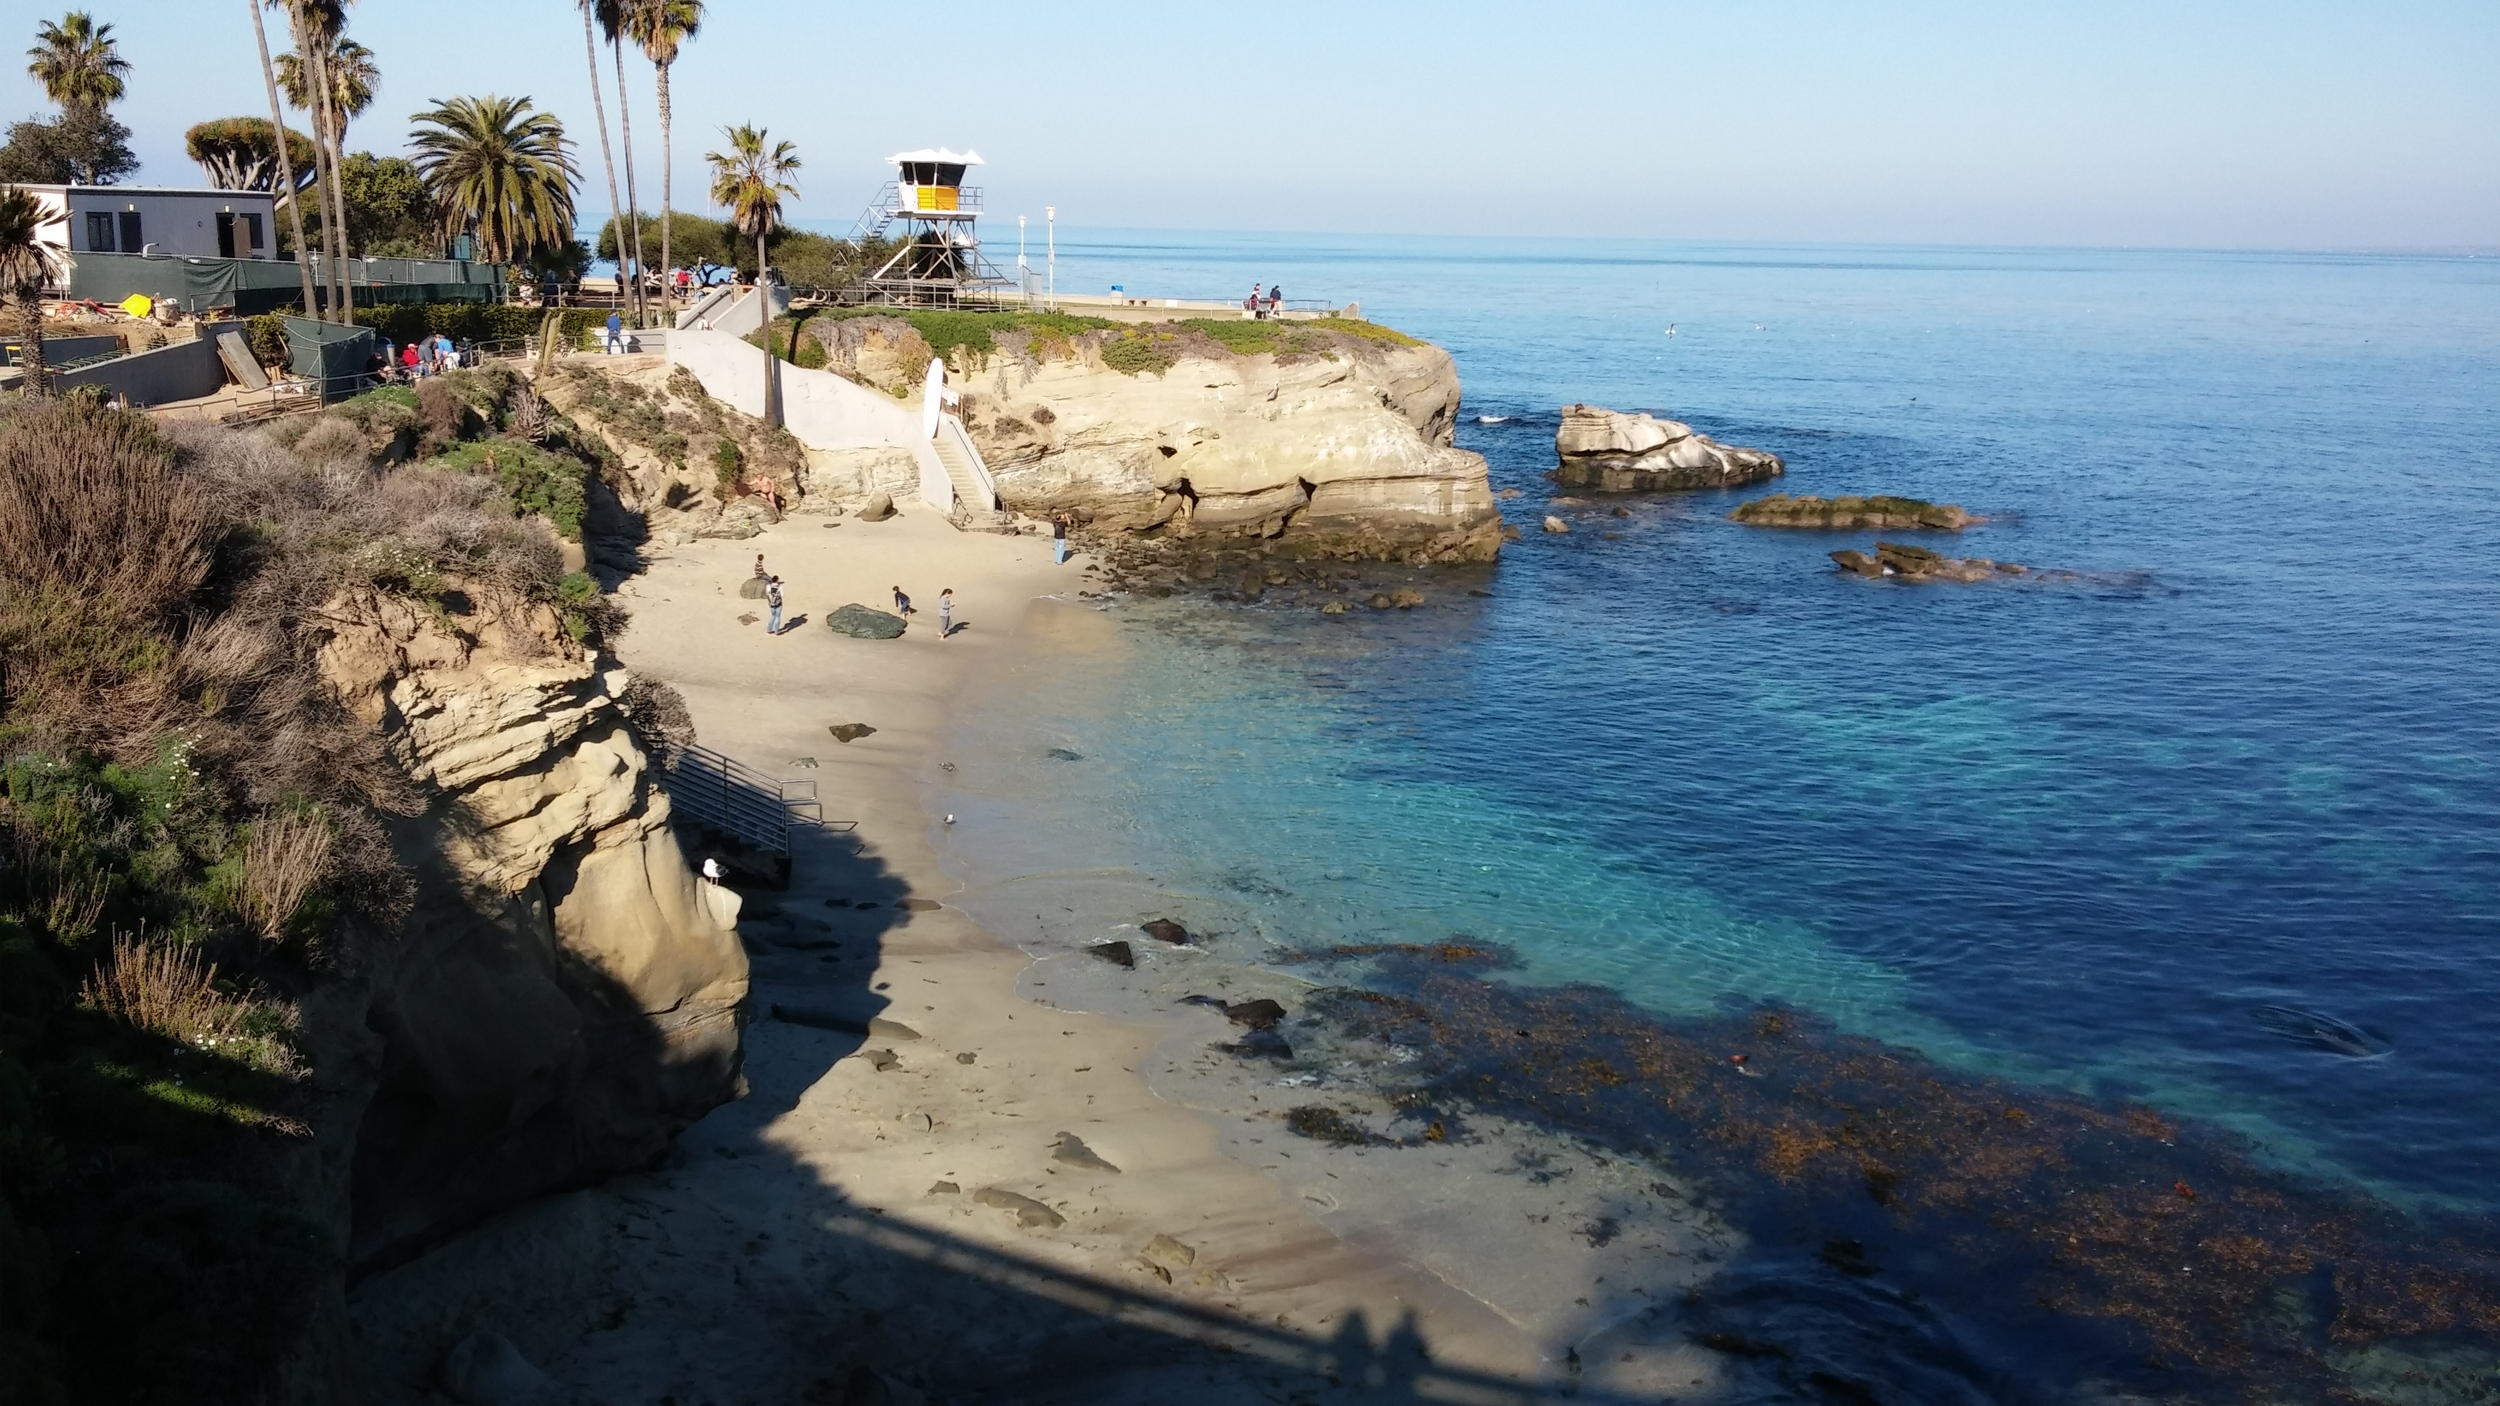 La Jolla Beach, California